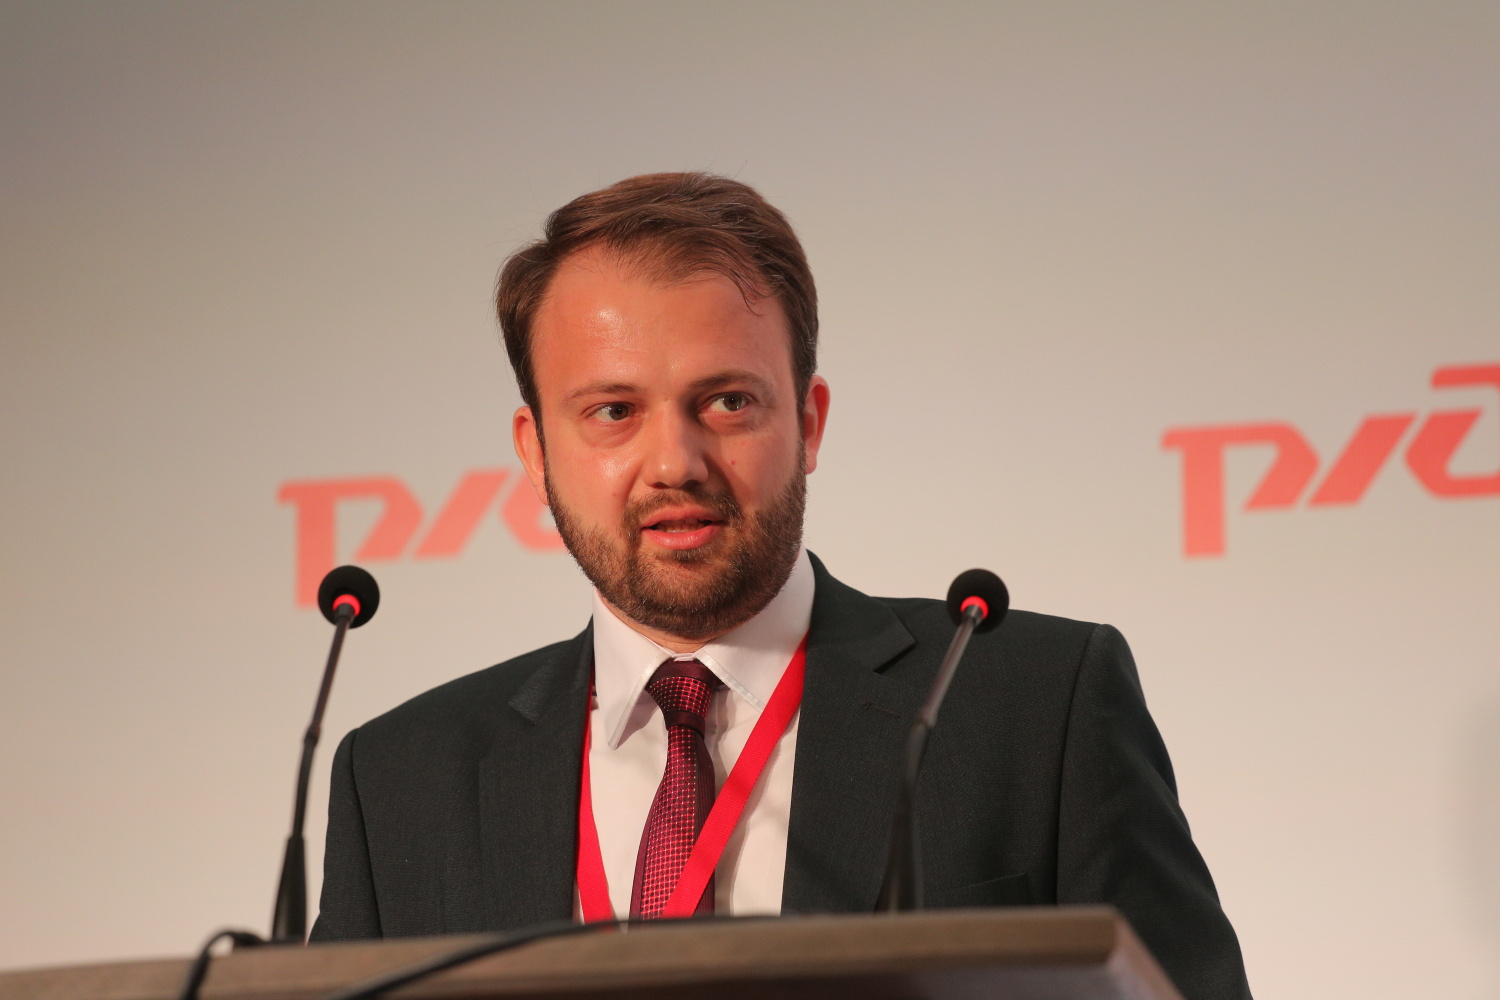 ČD Cargo presented its options in Kaliningrad